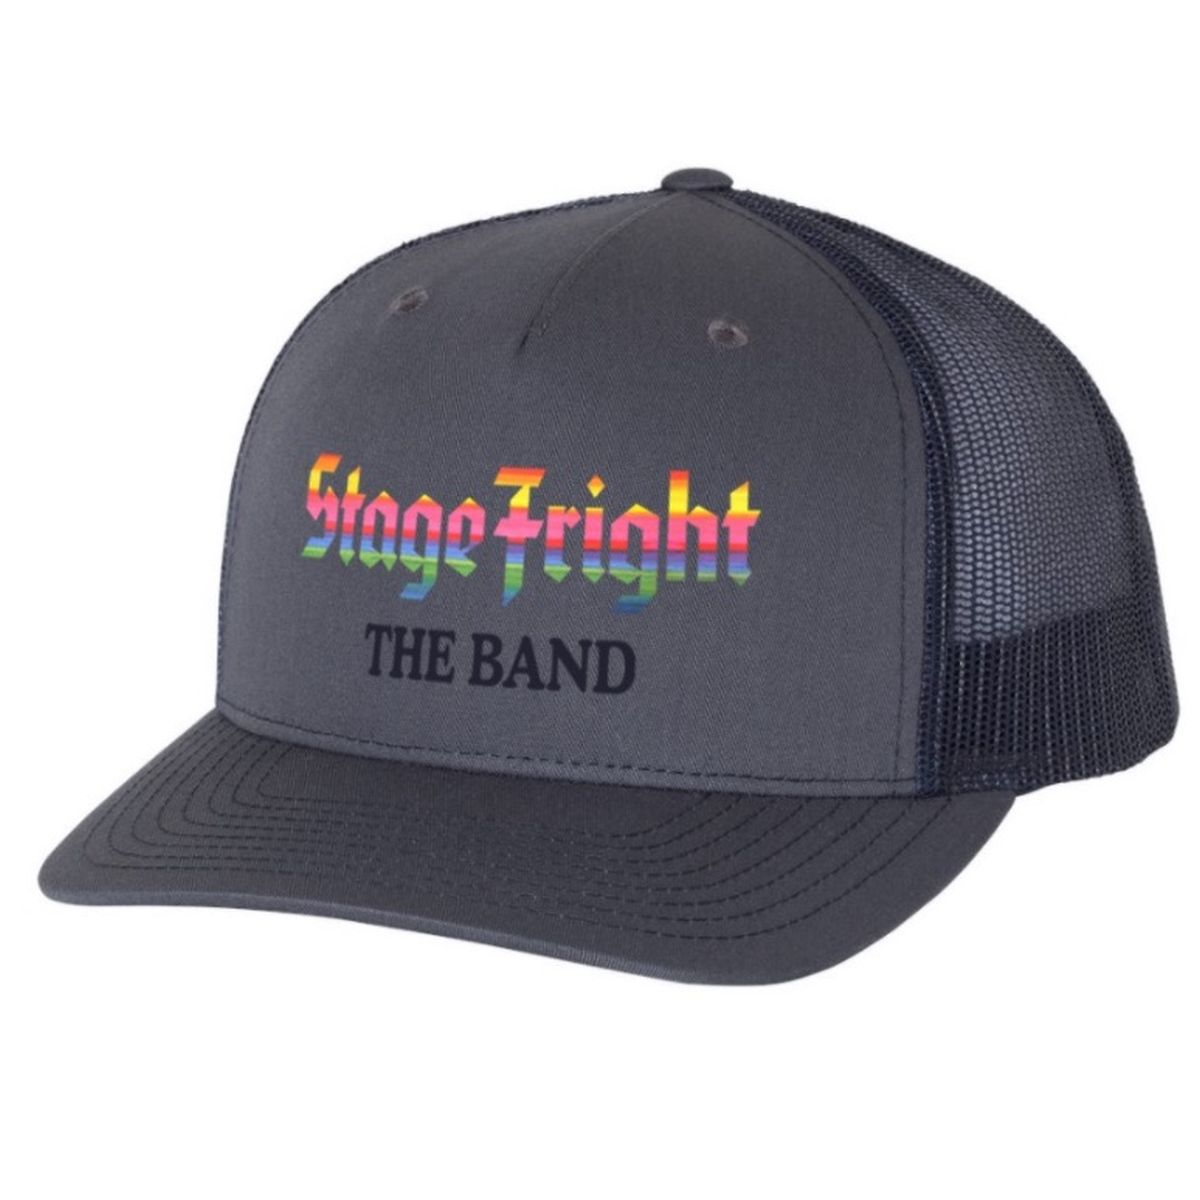 Stage Fright Charcoal Trucker Hat